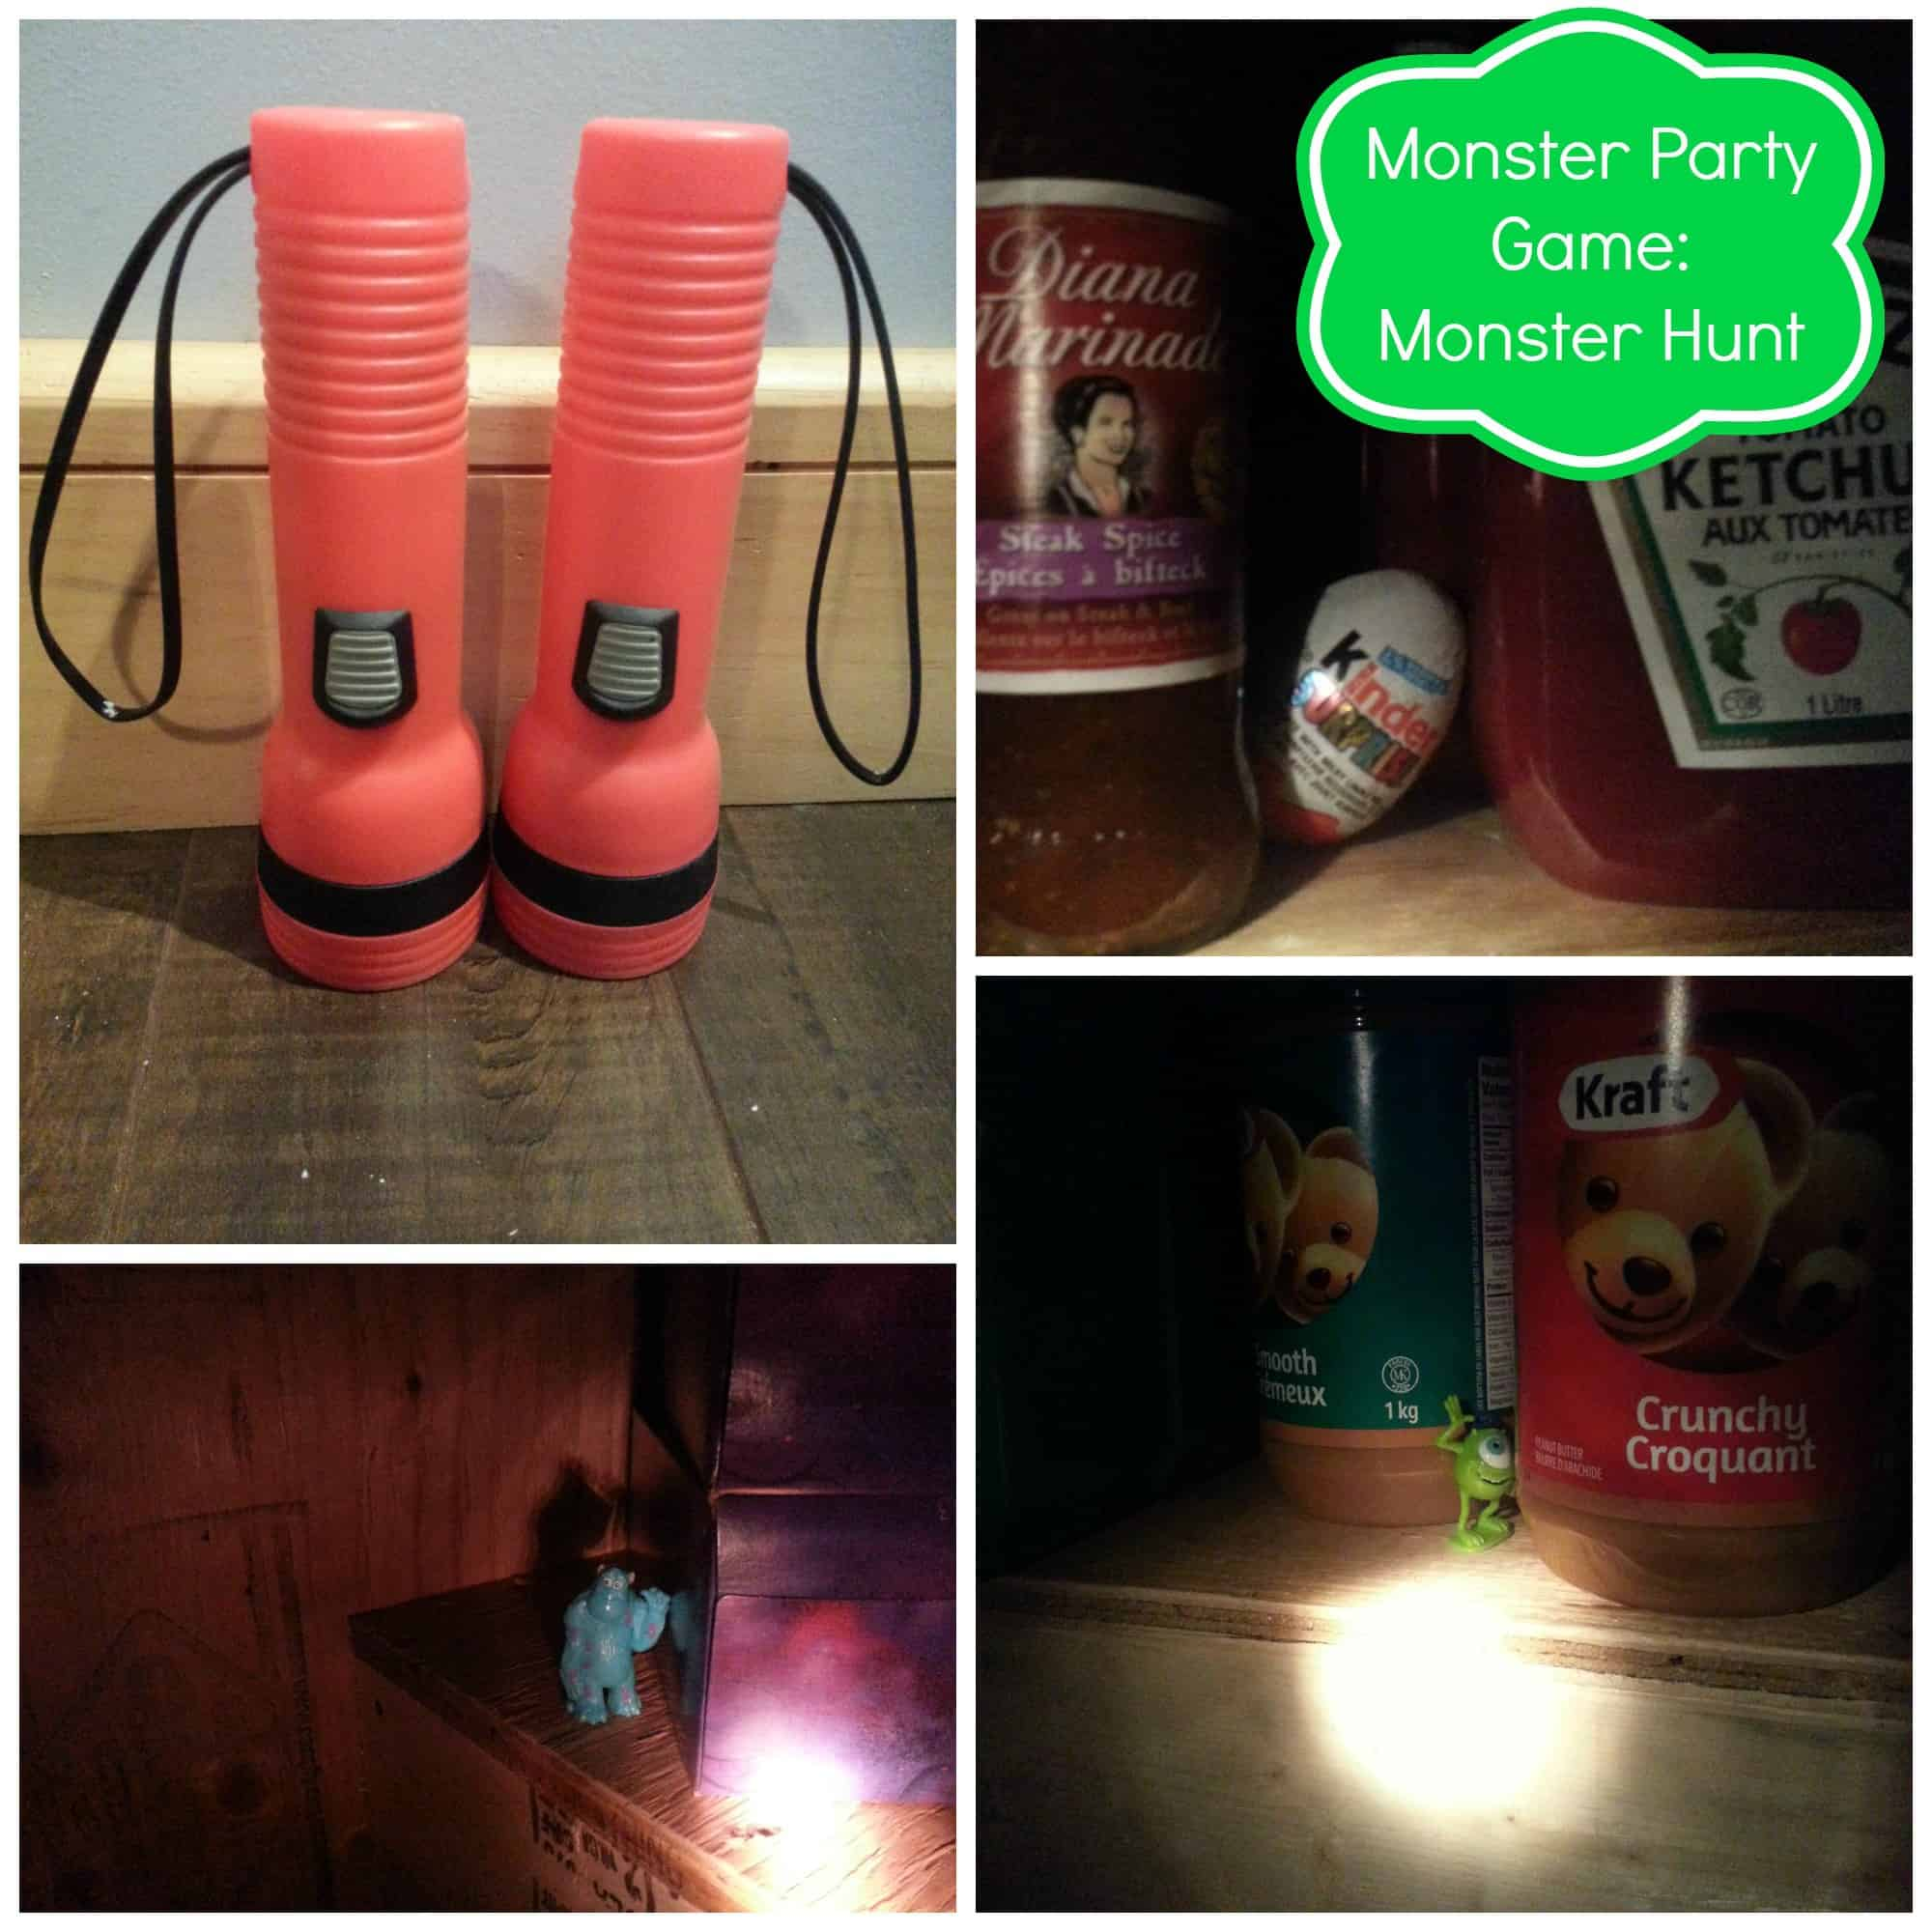 Monster Party Games